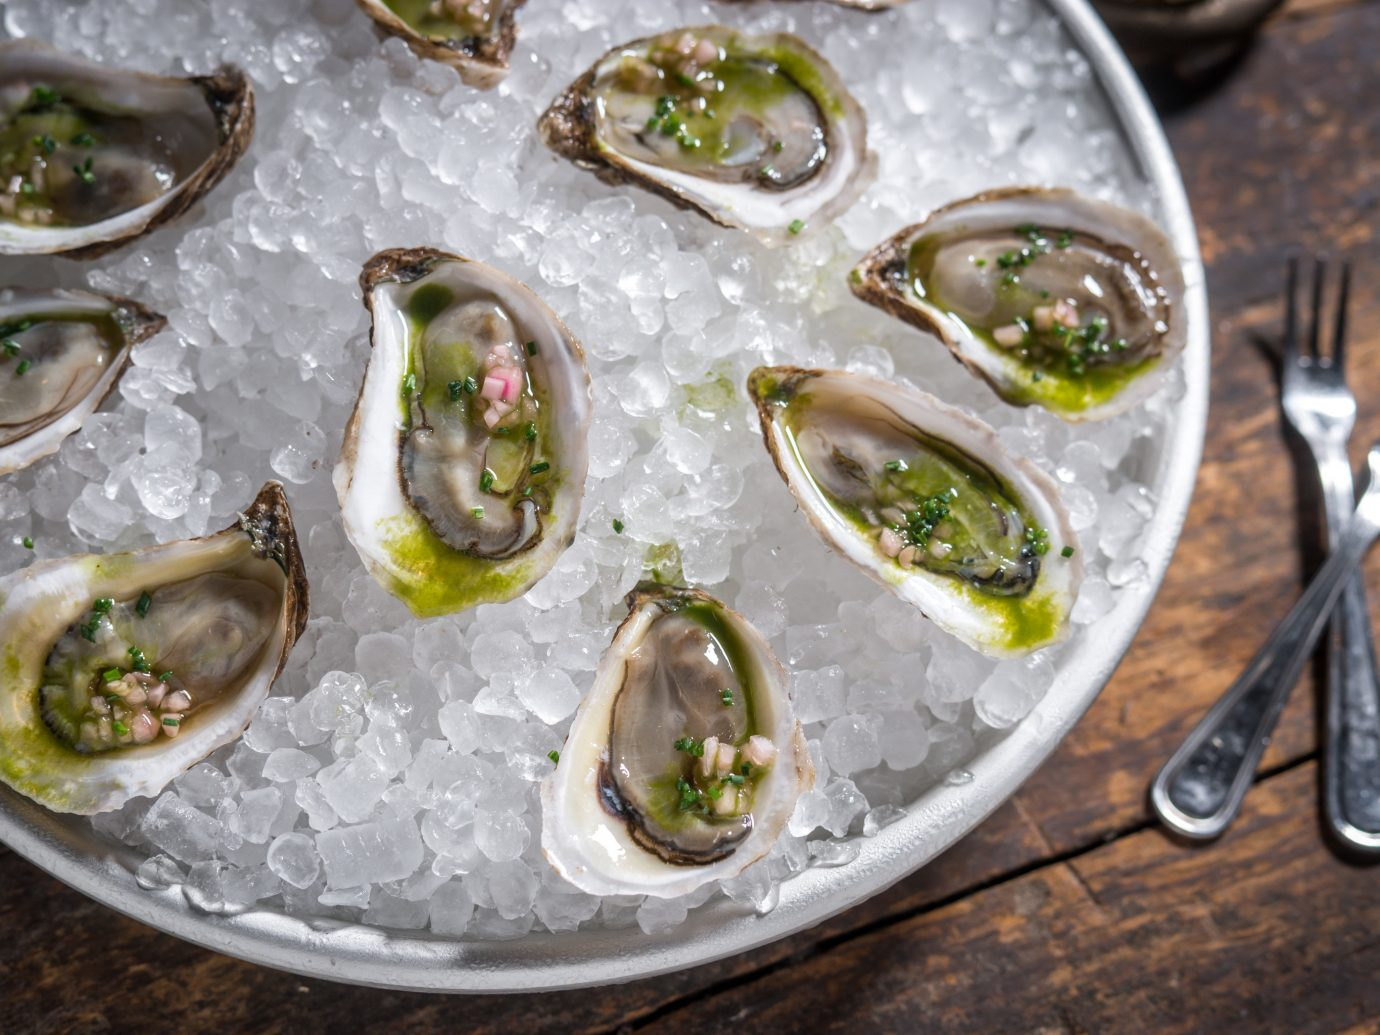 Food + Drink Romance food Seafood mussel oyster fish invertebrate animal source foods dish produce clams oysters mussels and scallops meal meat several